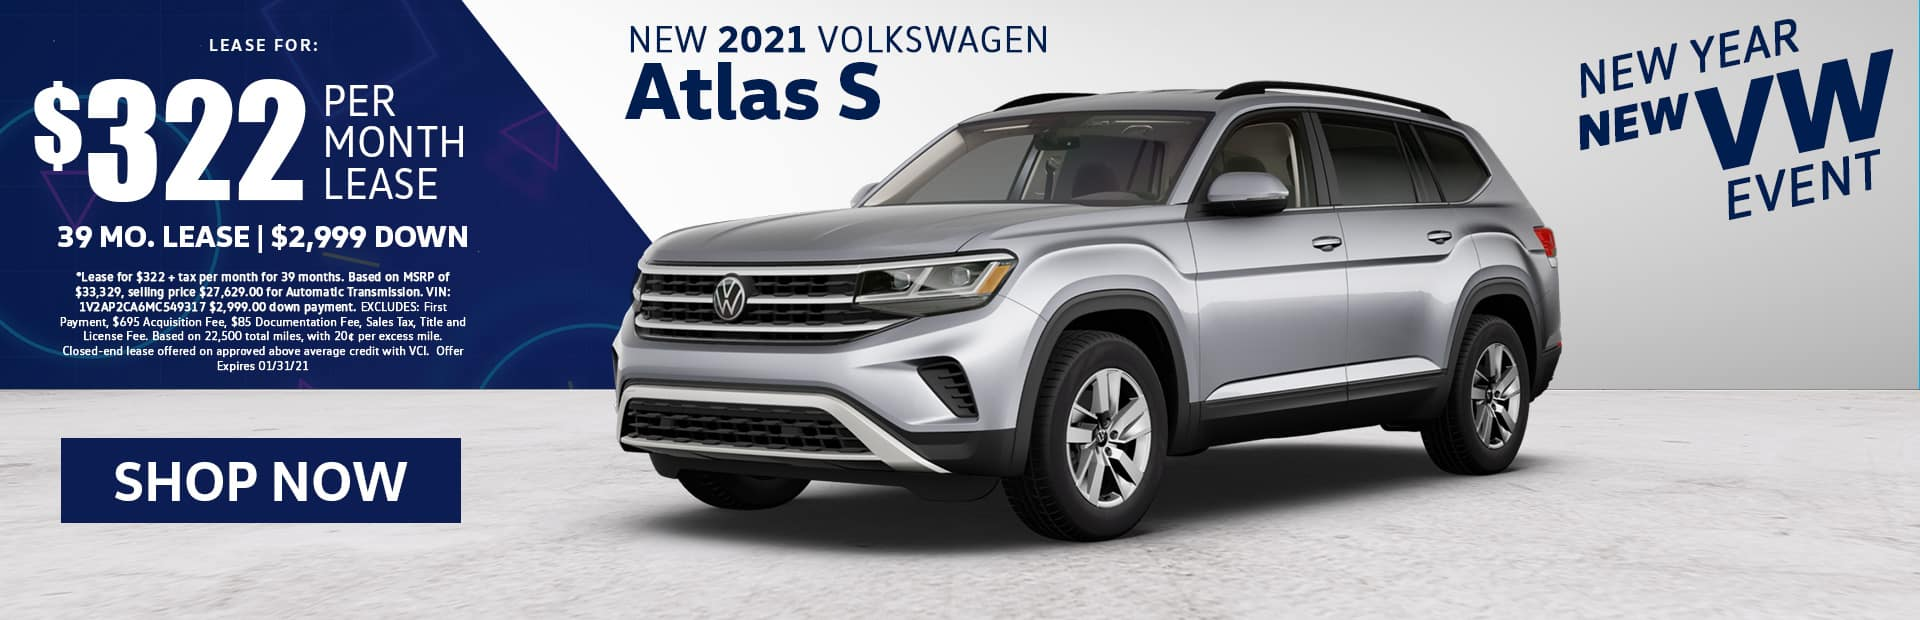 new 2021 vw atlas lease special